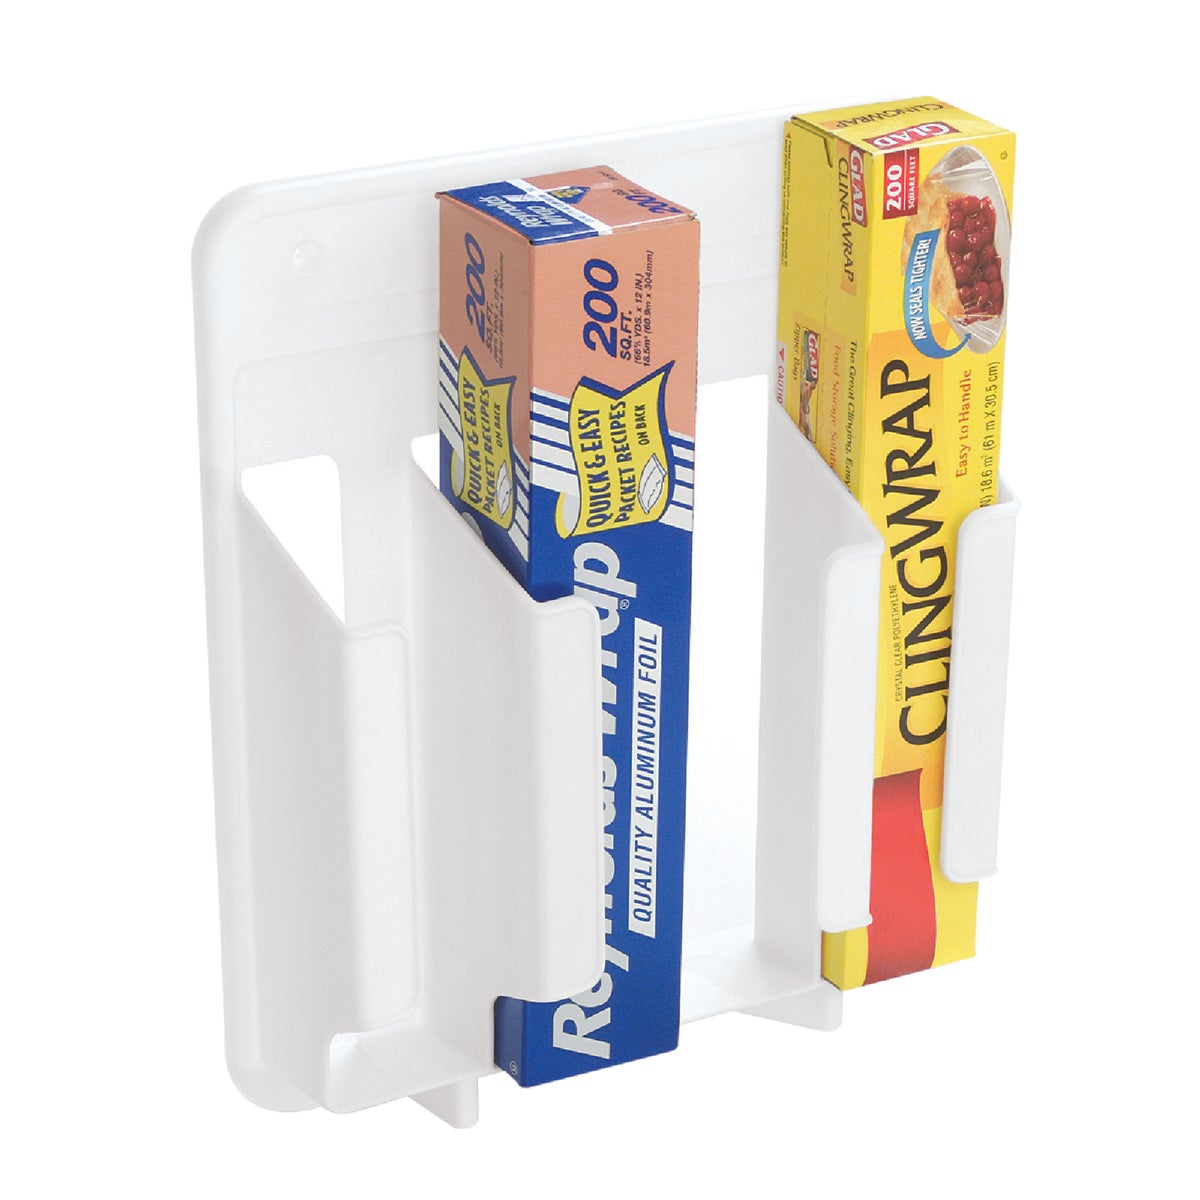 WHITE WRAP'N BAG HOLDER - 231000WHT by Rubbermaid Home